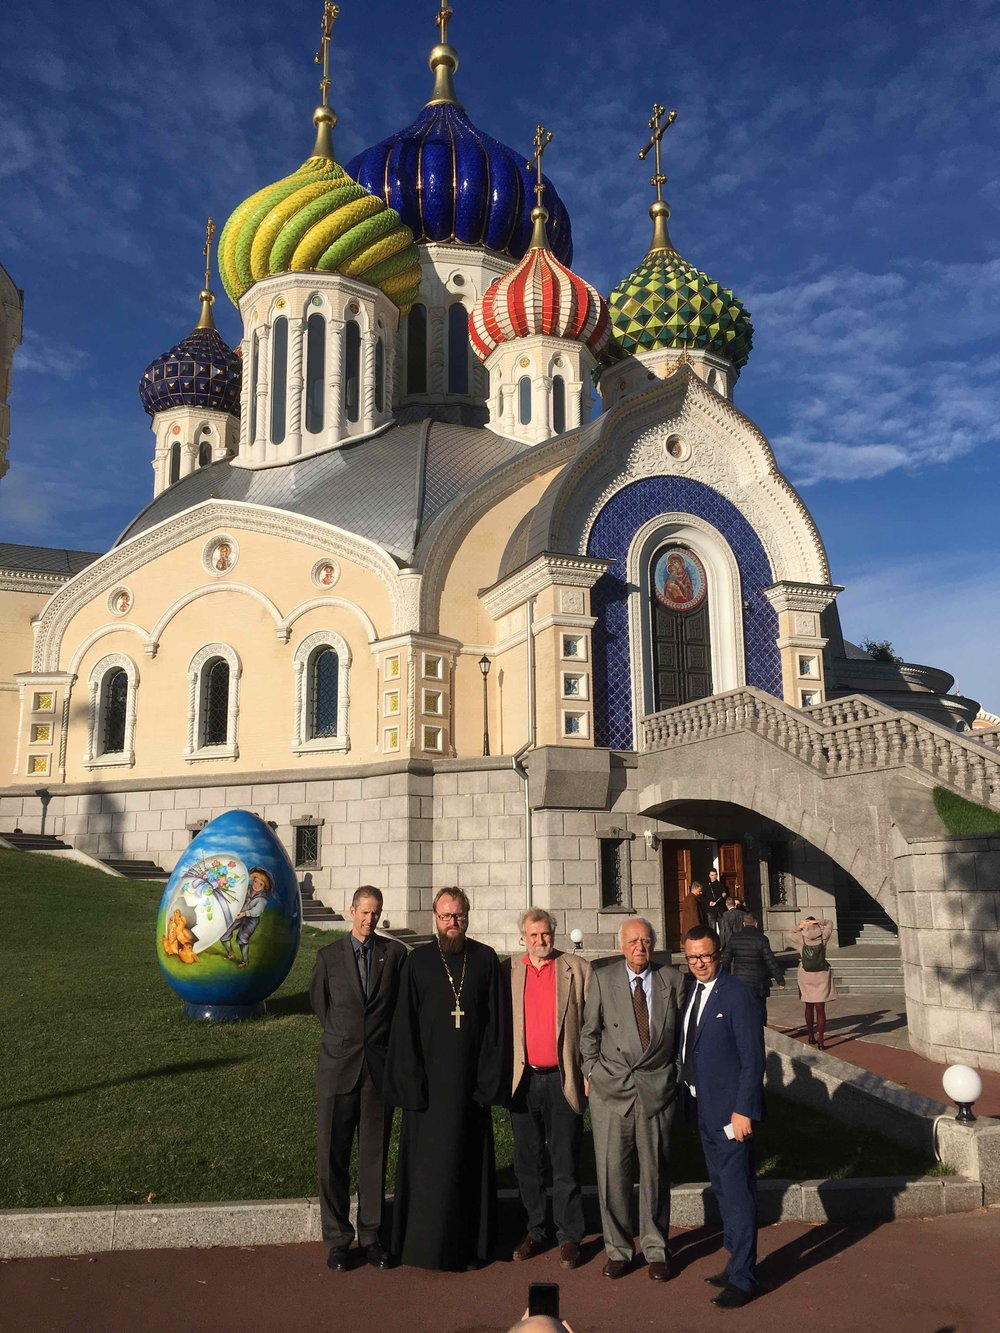 The InterContinental Railway team meet with Father Pimen, a top bishop of the Russian Orthodox Church, at the Patriarch Court to discuss how to gain the church's support for the ICR.